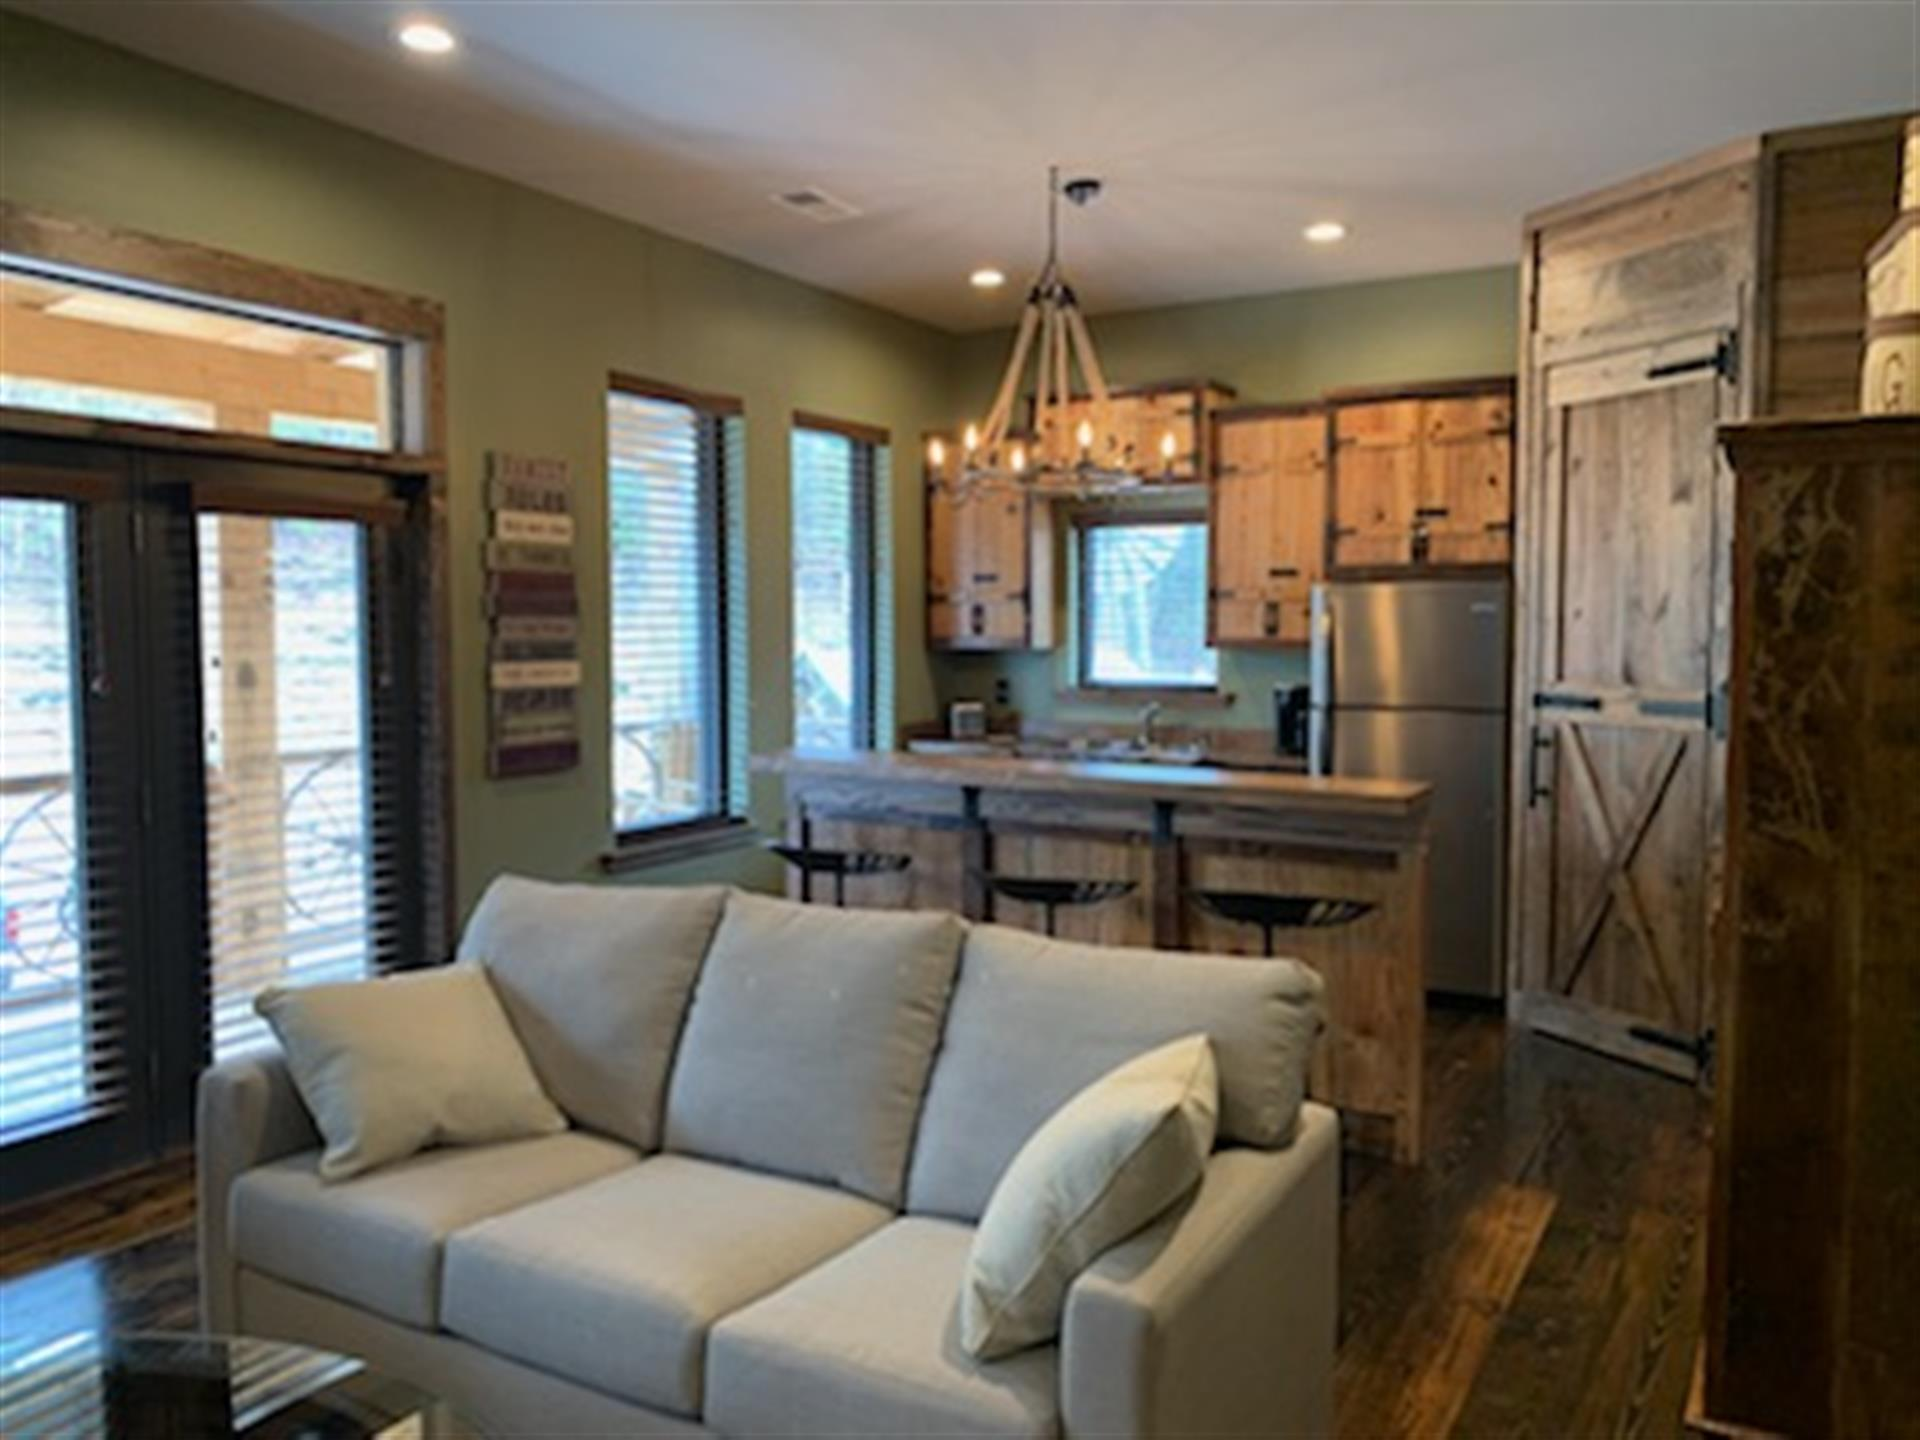 couch with double doors next to it. Kitchen in background with wooden cabinets and 3 stools at the countertop